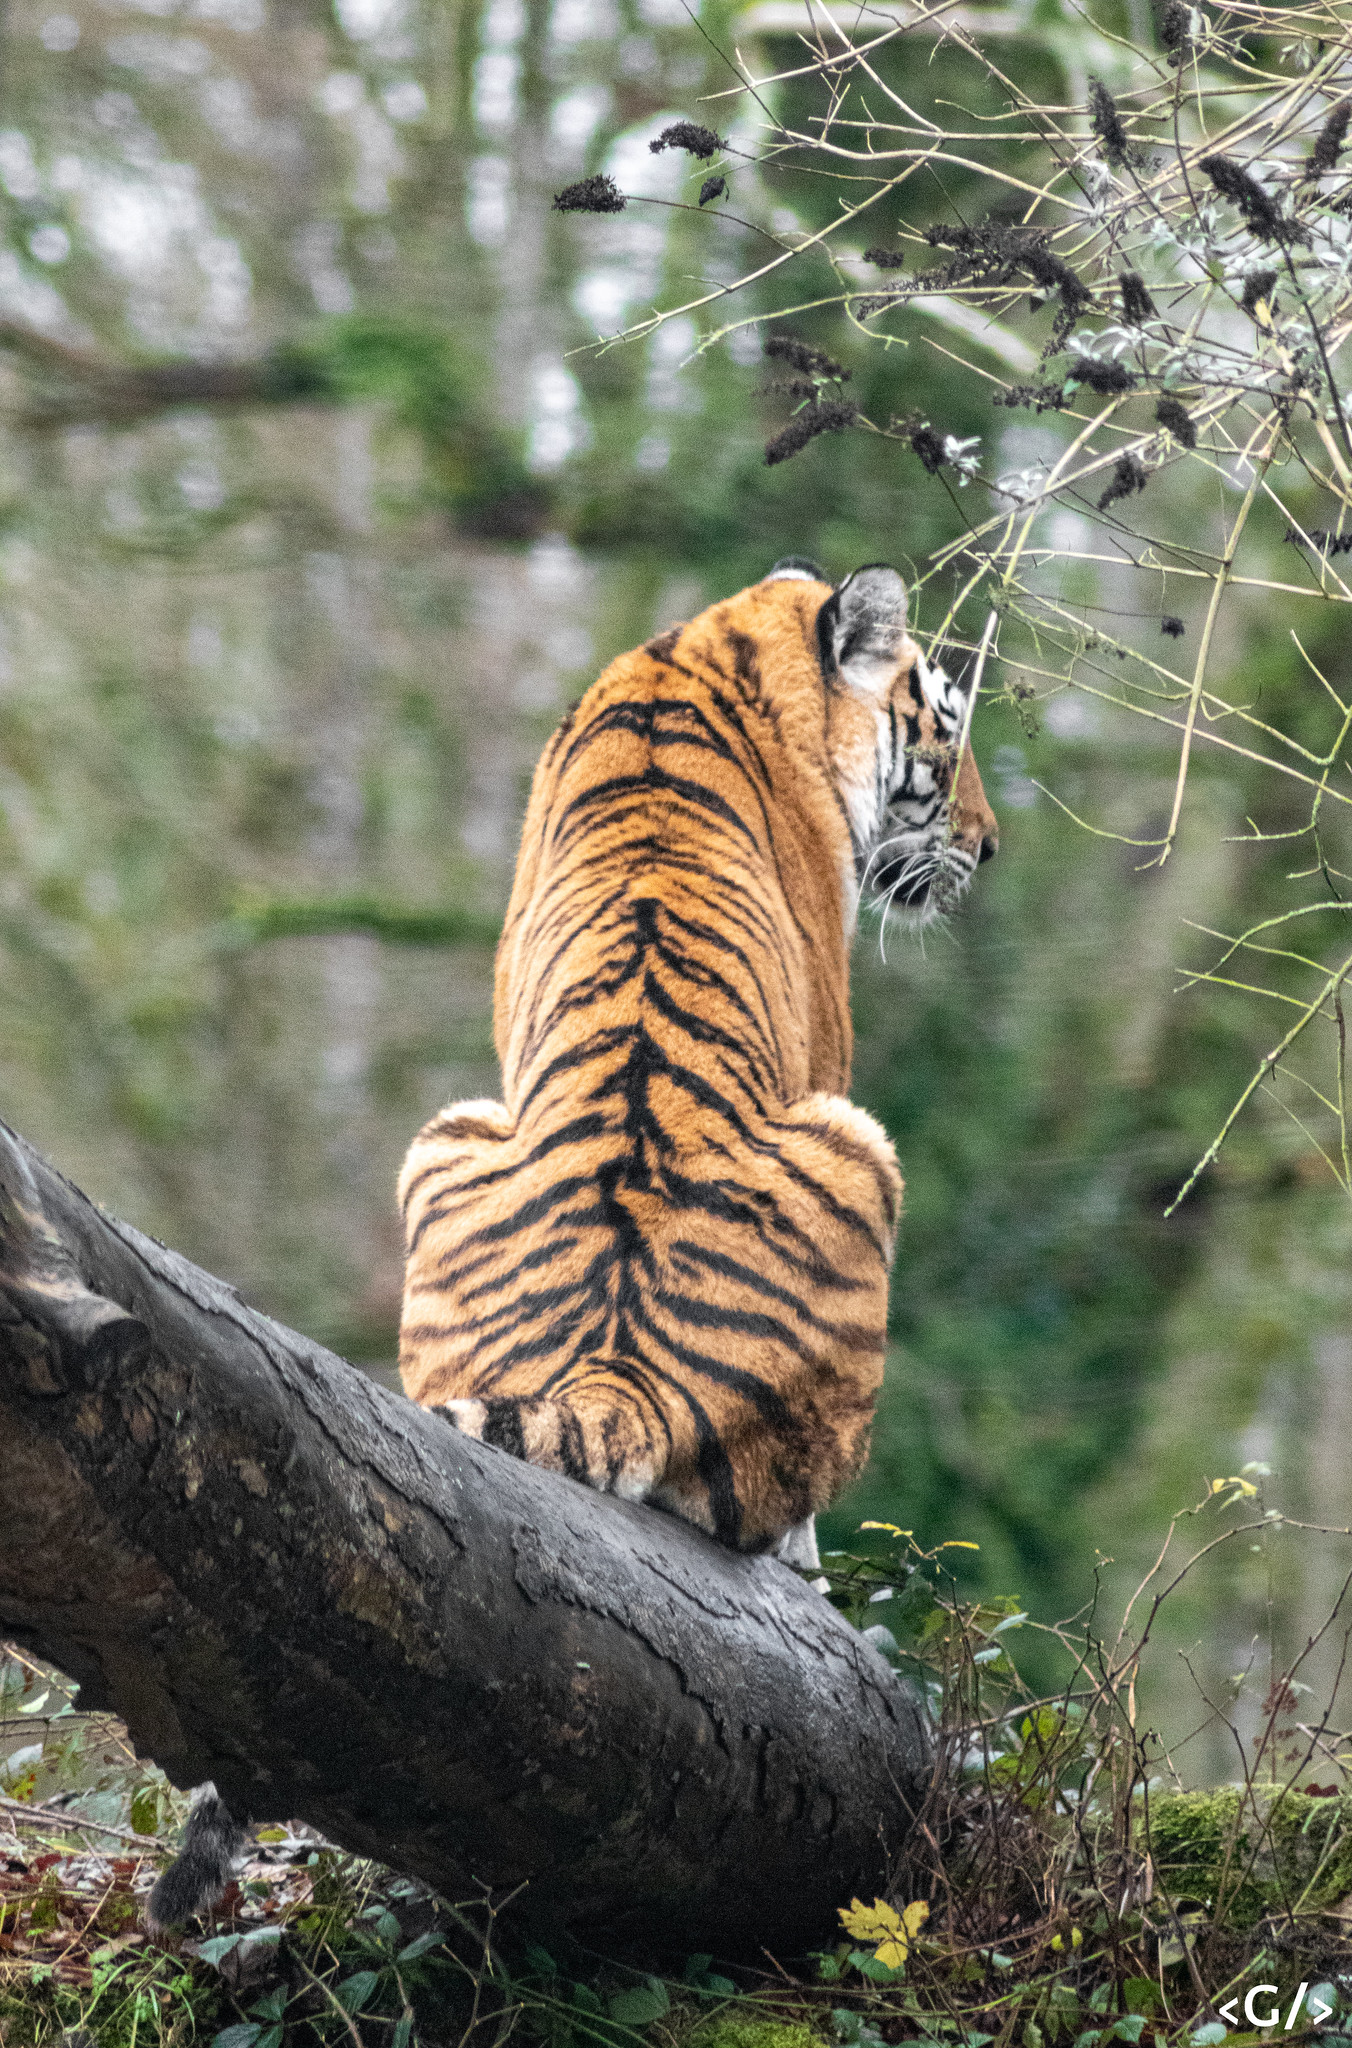 A tiger contemplating something on a tree